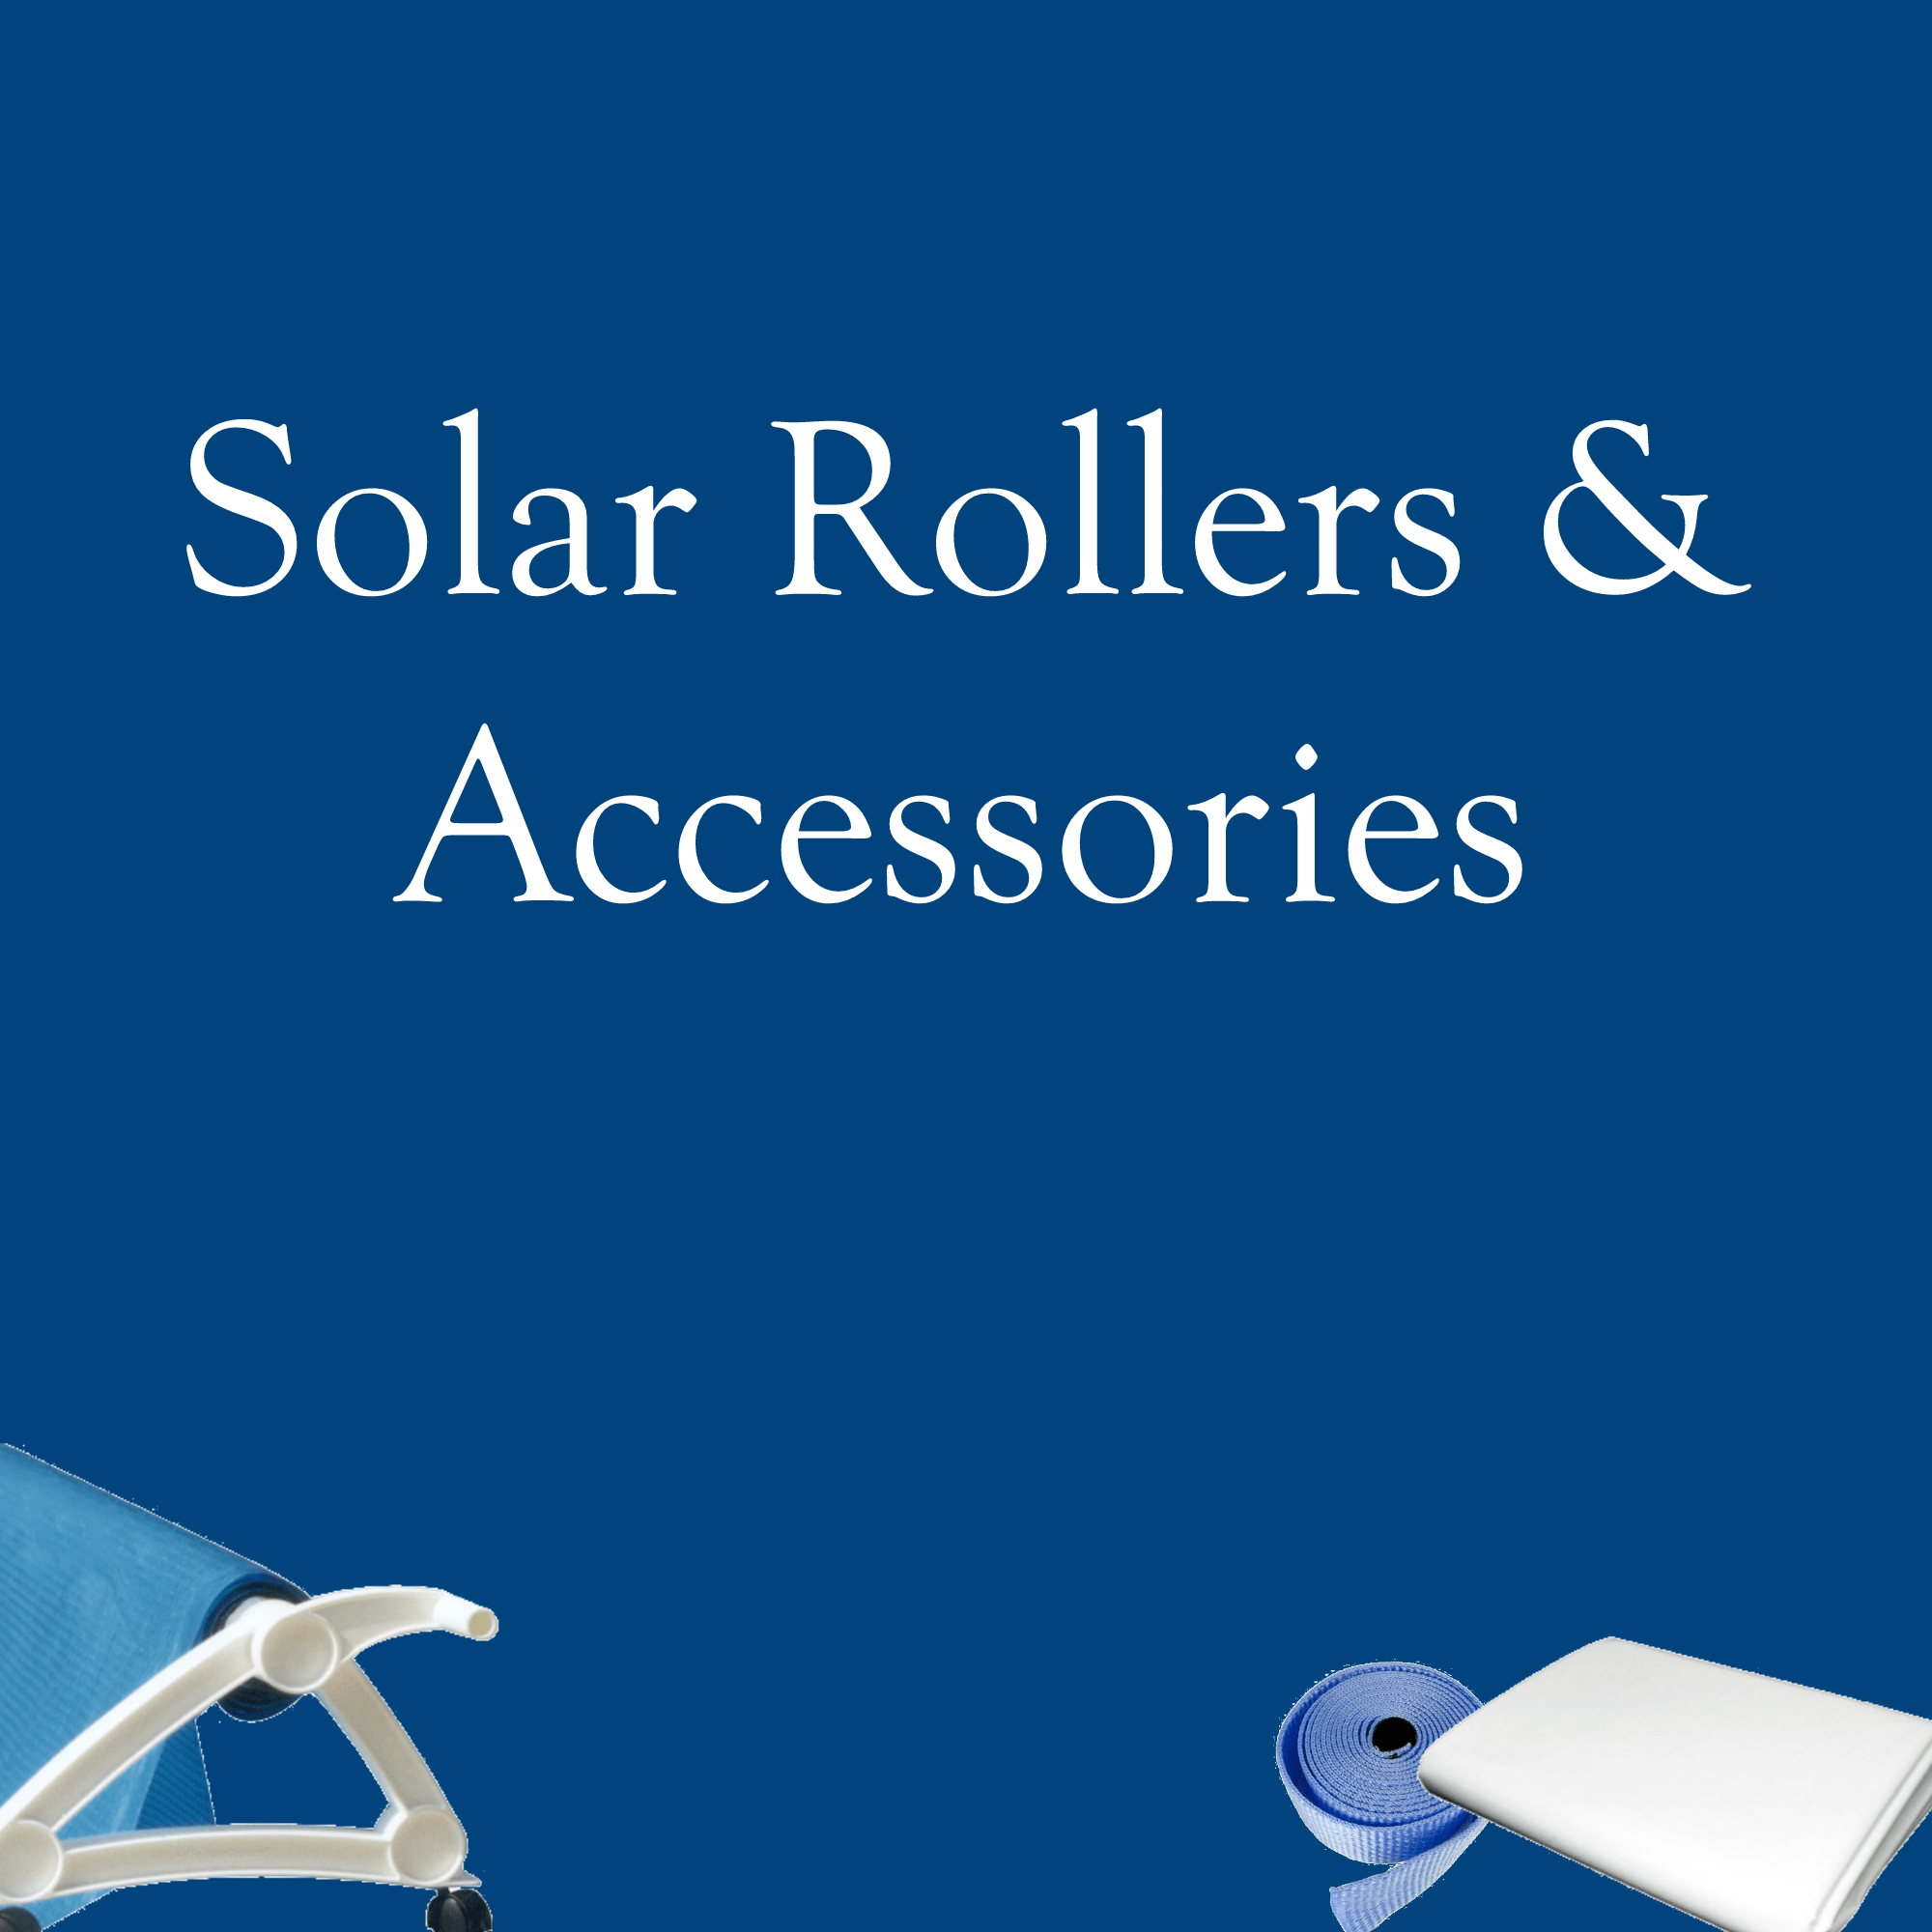 Solar Rollers and Accessories